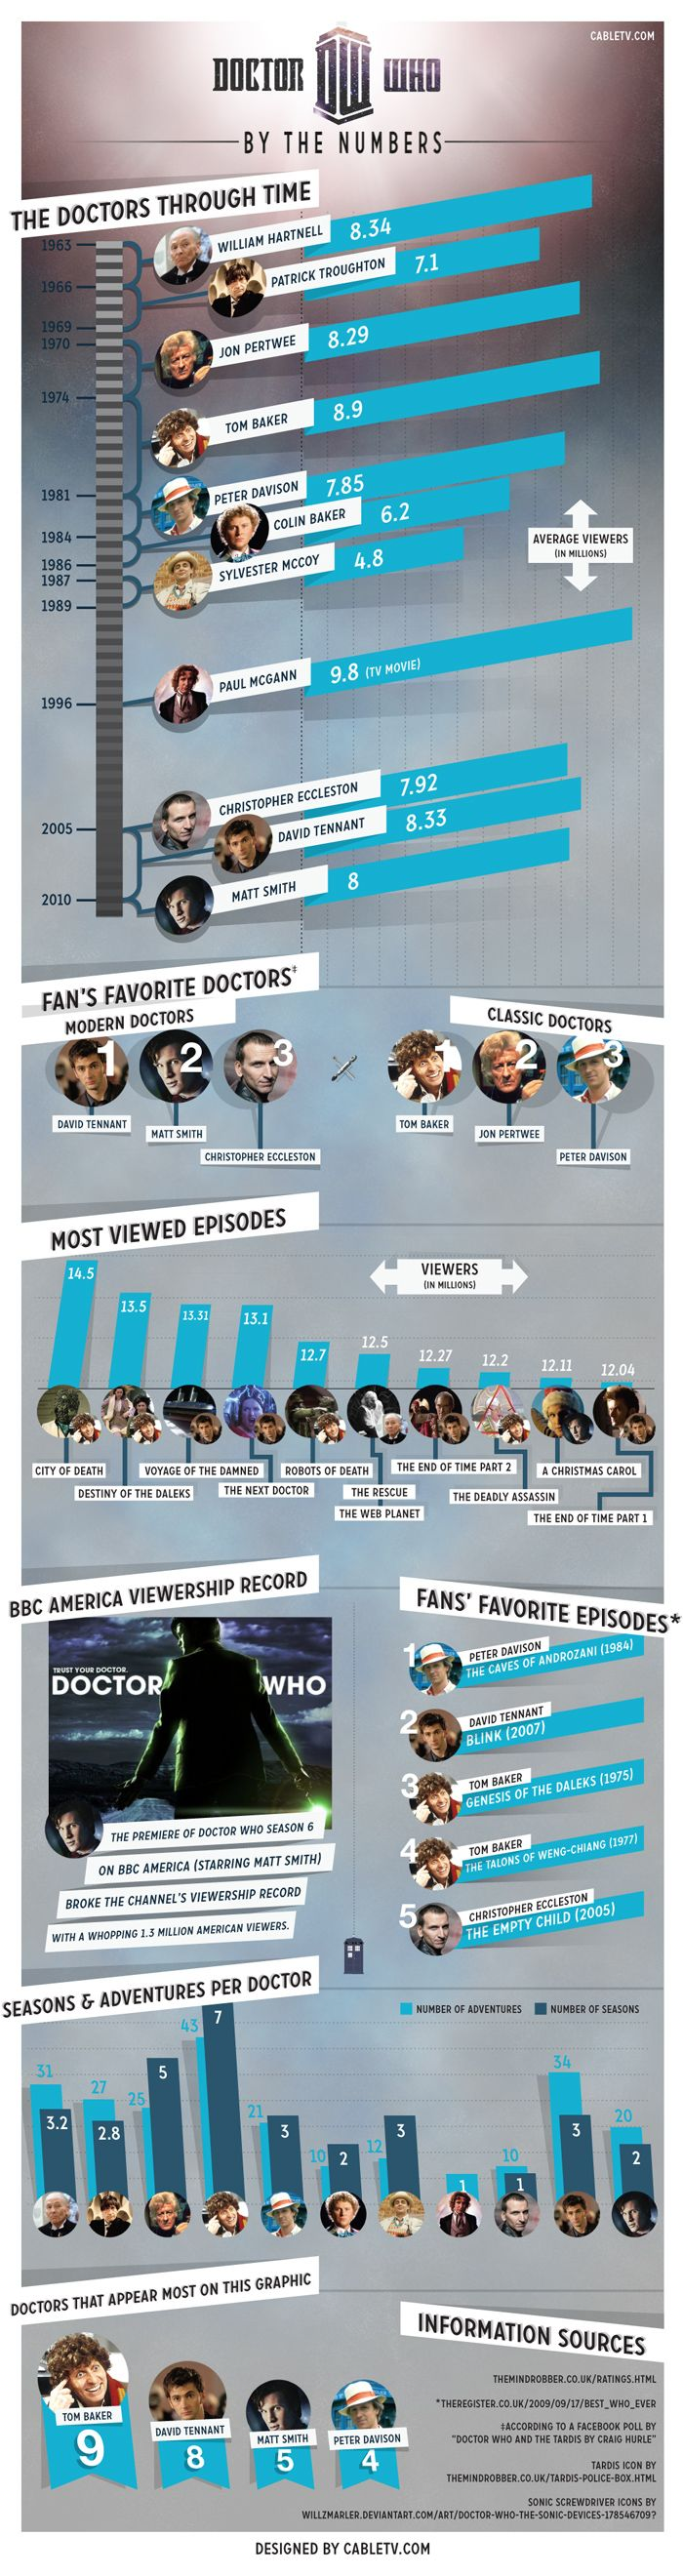 Doctor Who By The Numbers